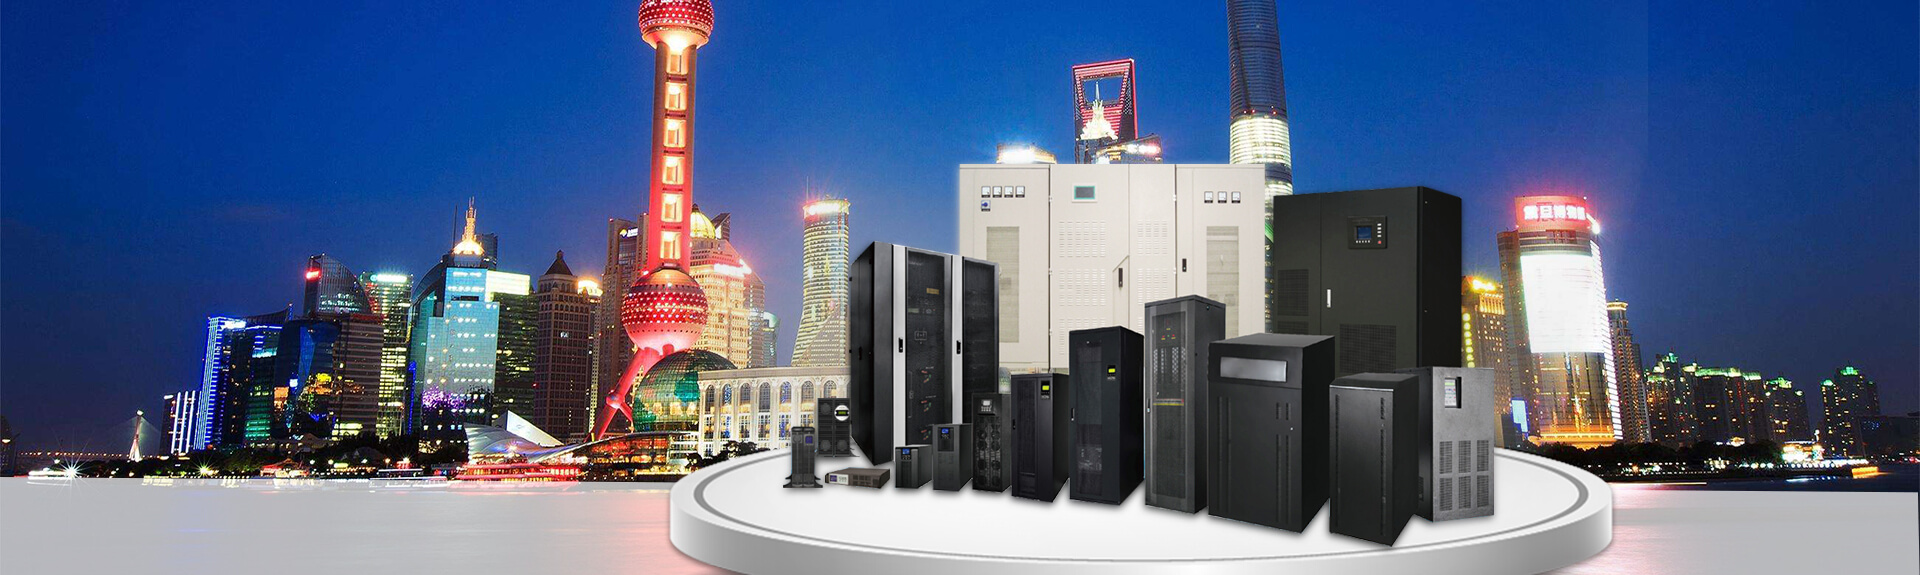 Reros (Changzhou) Electronics Co., Ltd.